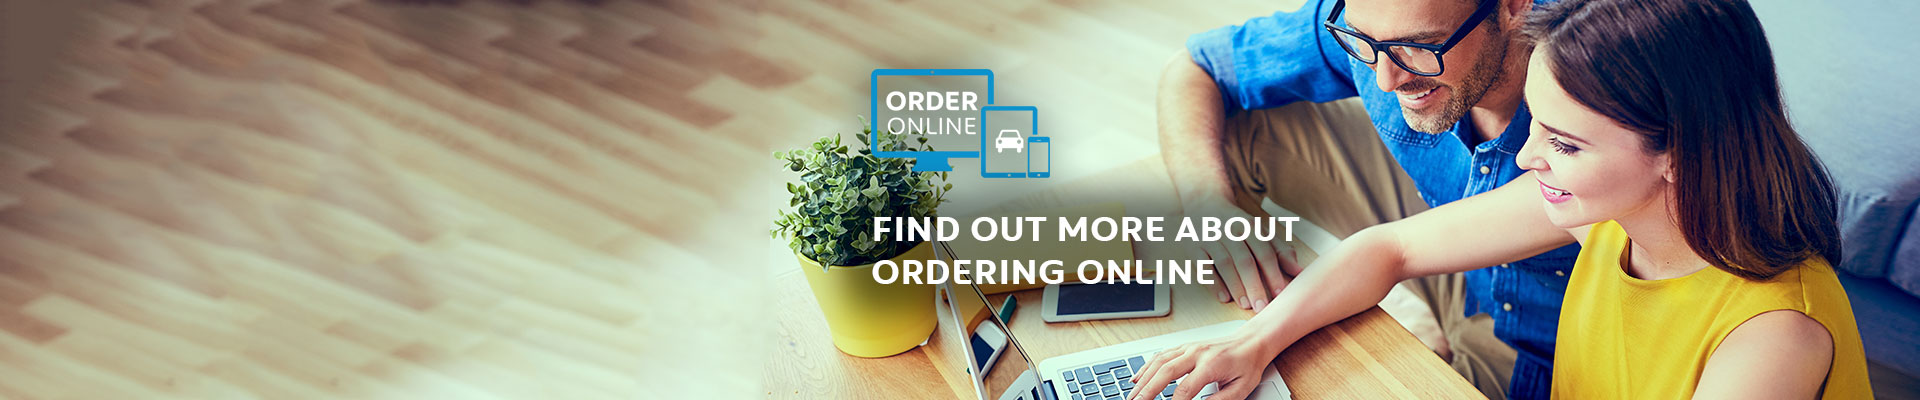 Order Your Brand New Peugeot Online Today